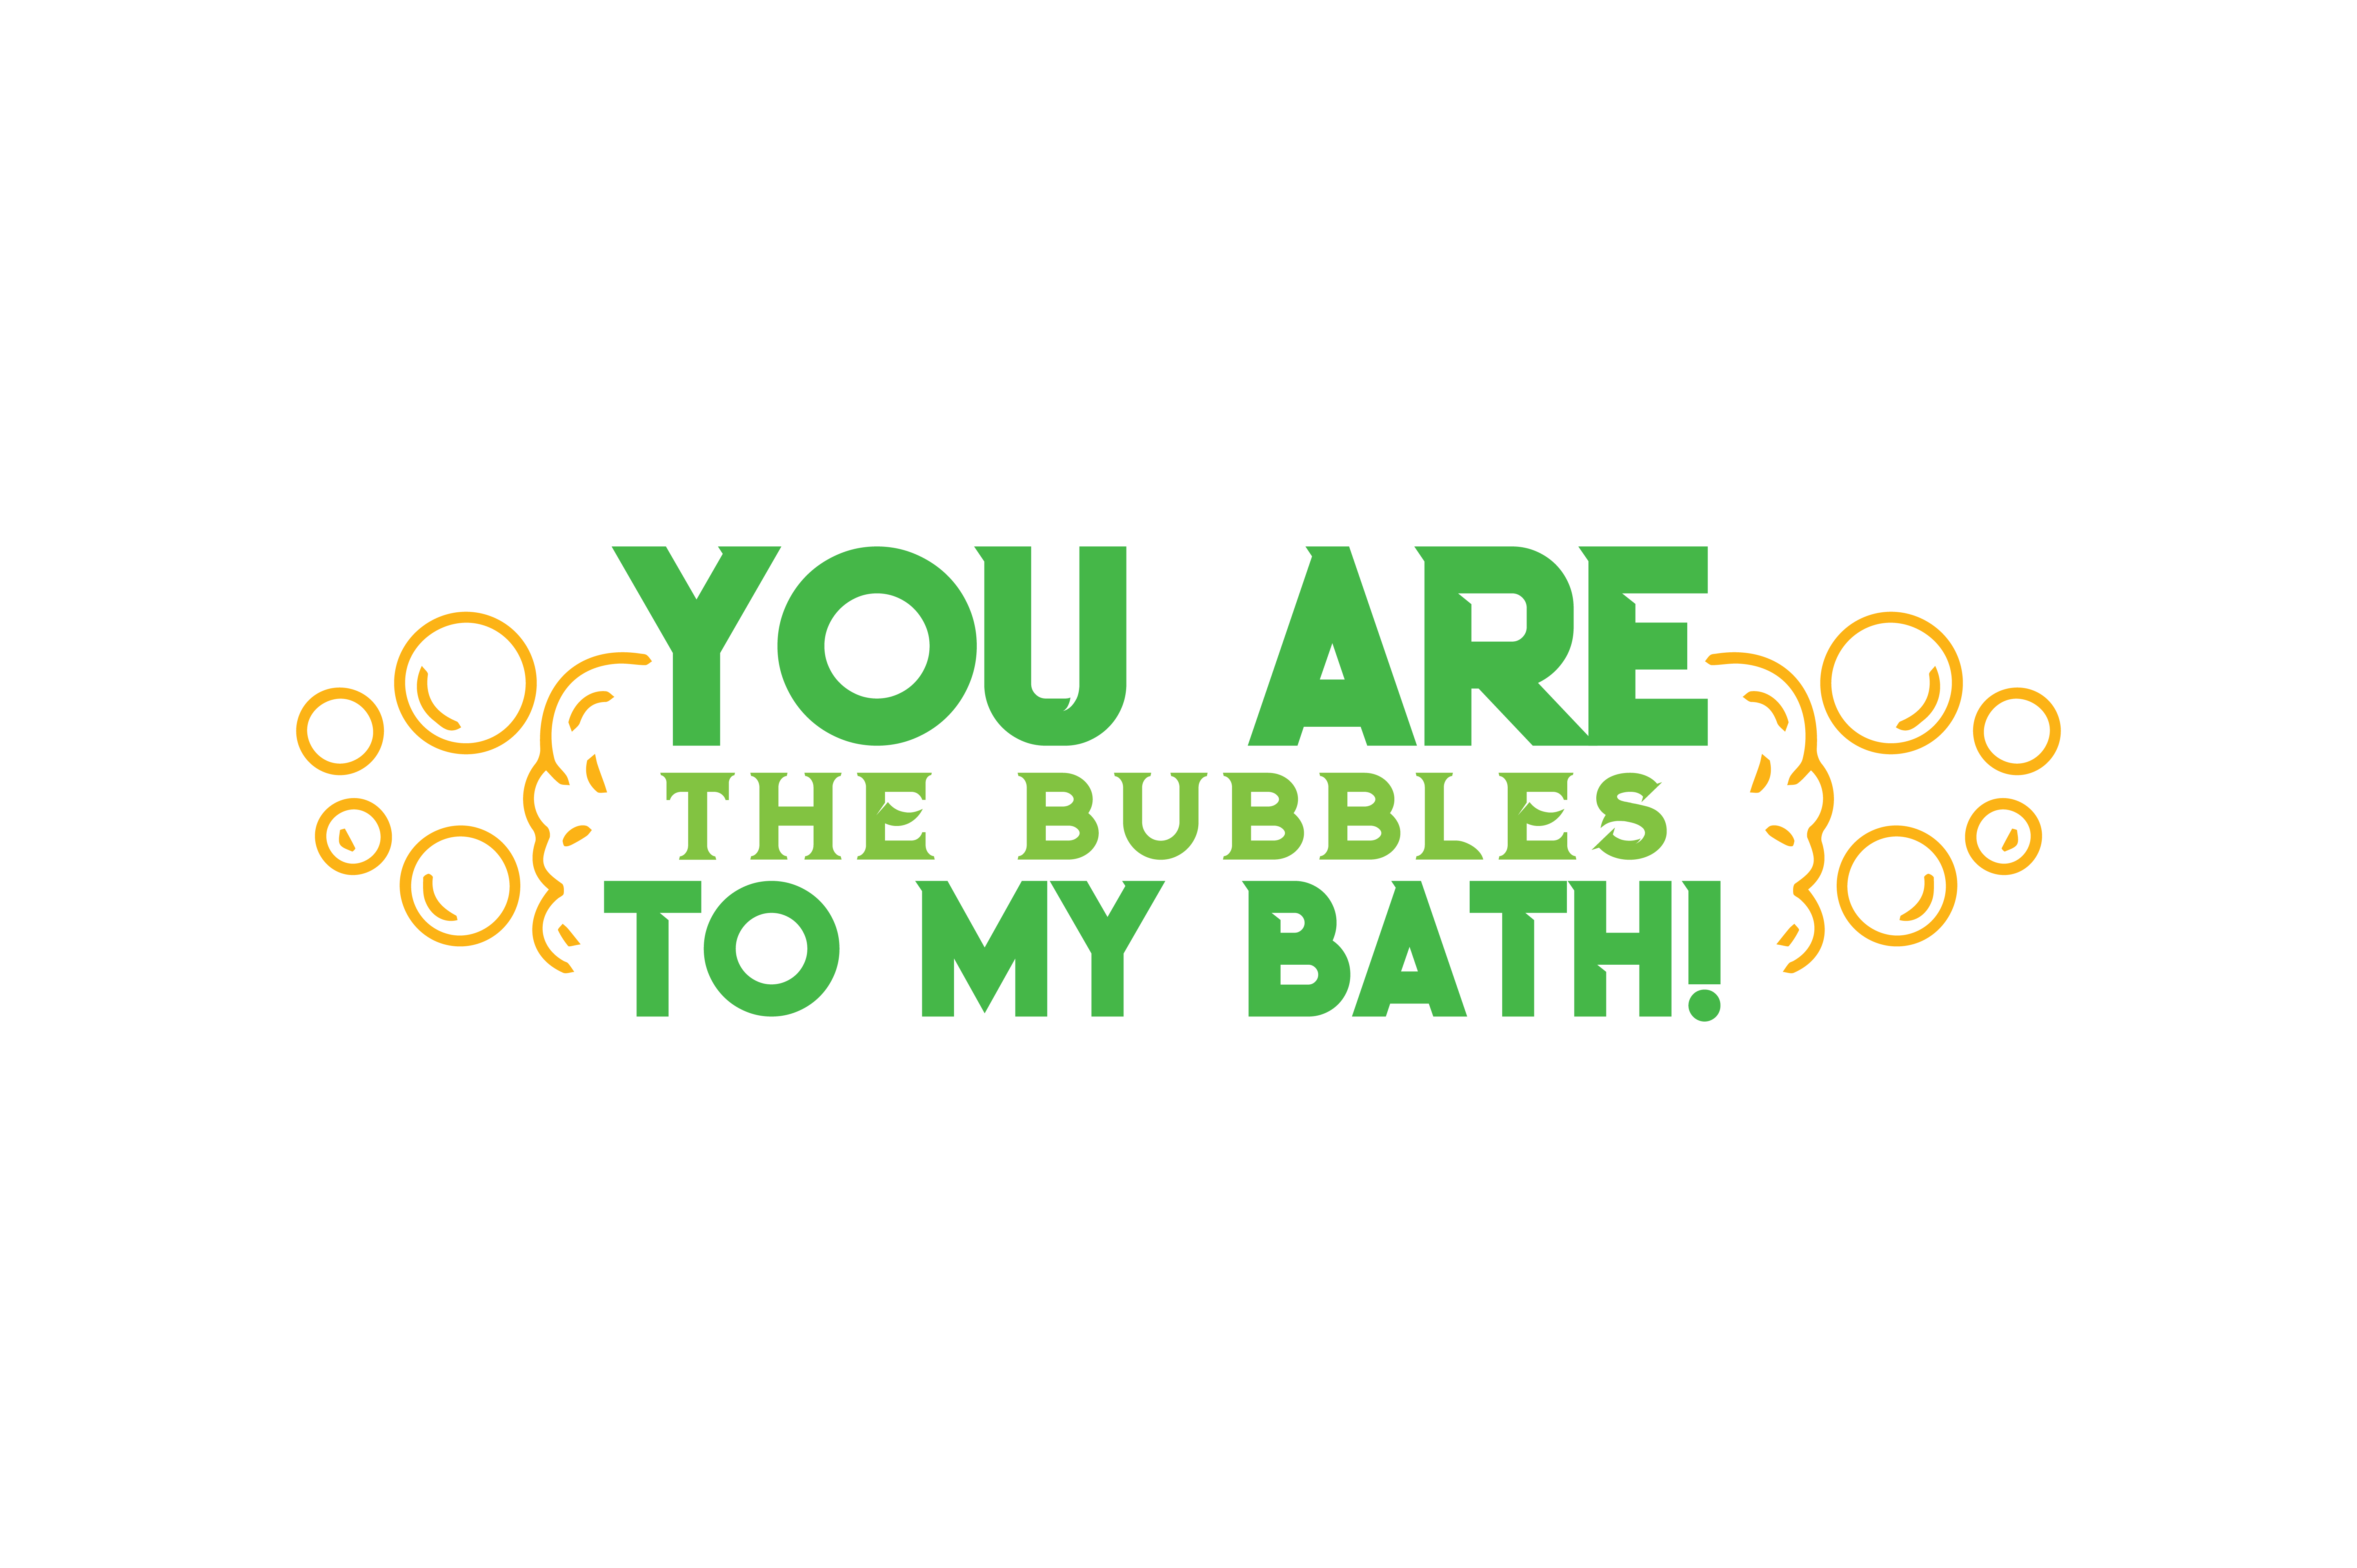 You Are The Bubbles To My Bath Quote Svg Cut Graphic By Thelucky